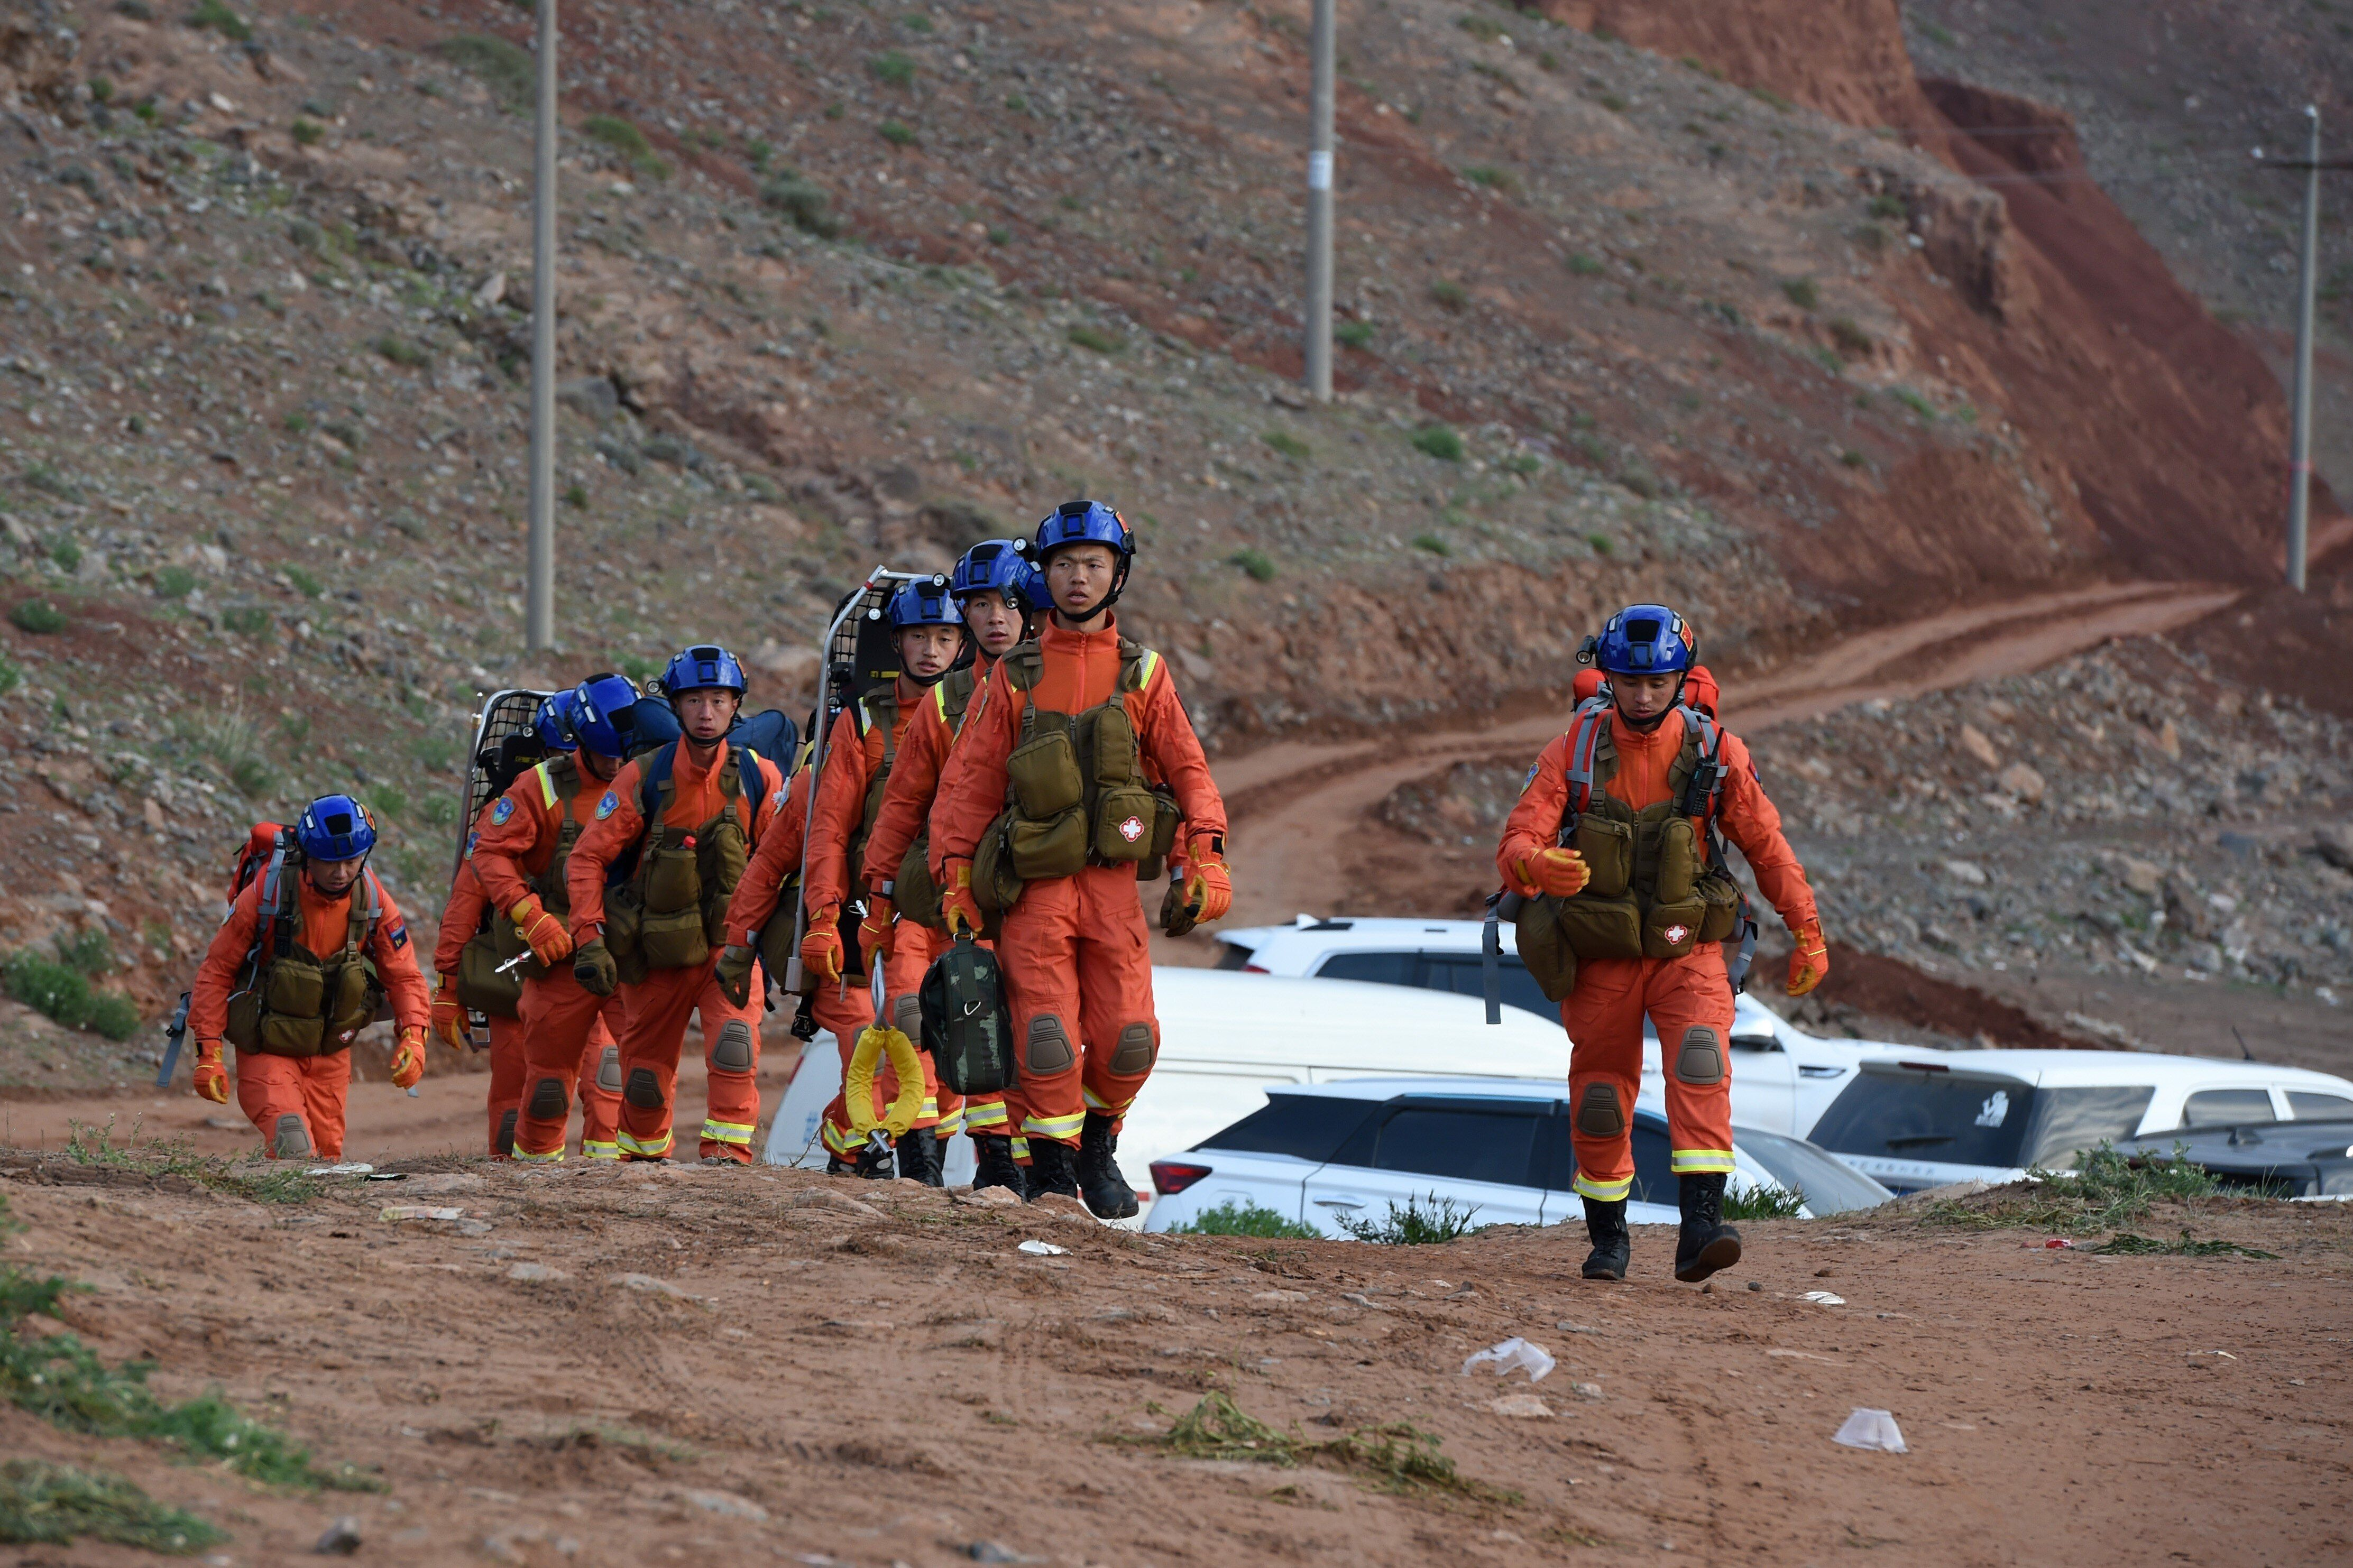 Rescuers walk into the accident site to search for survivors in Jingtai County of Baiyin City, northwest China's Gansu Provin